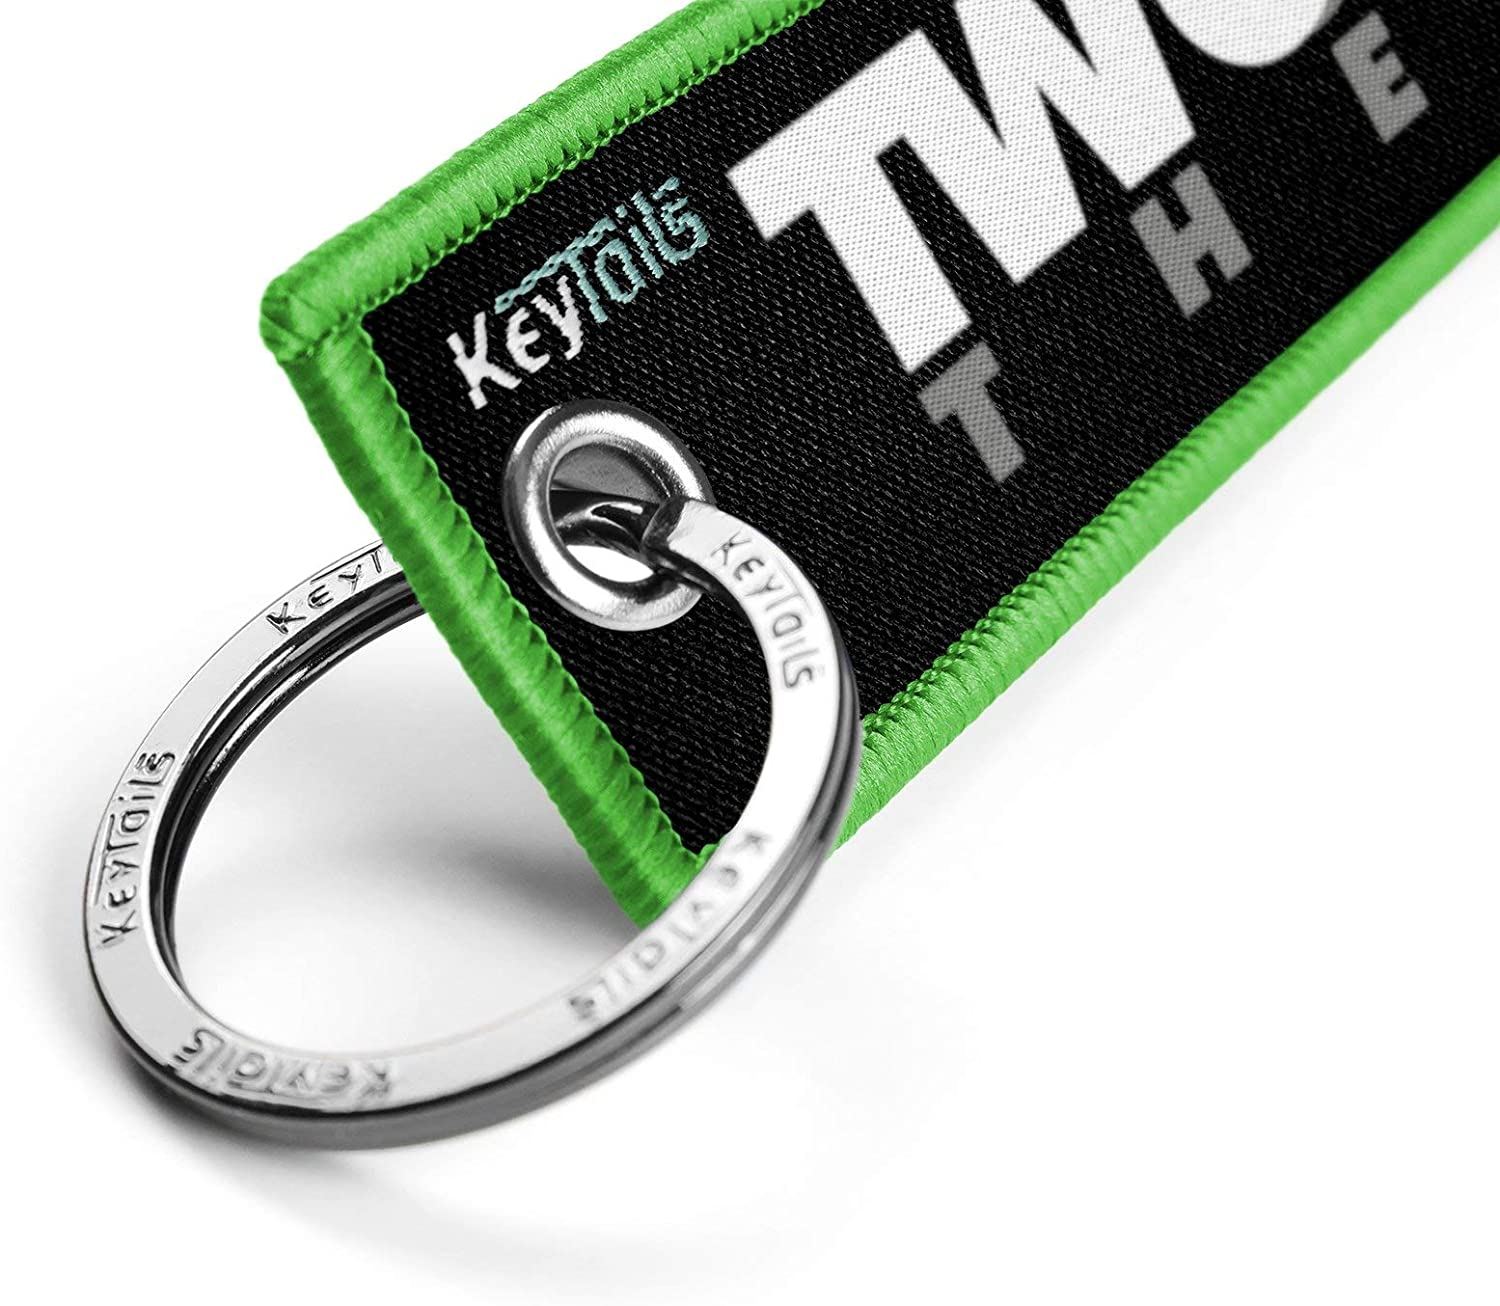 KEYTAILS Keychains UTV Two Wheel Therapy Scooter ATV Premium Quality Key Tag for Motorcycle